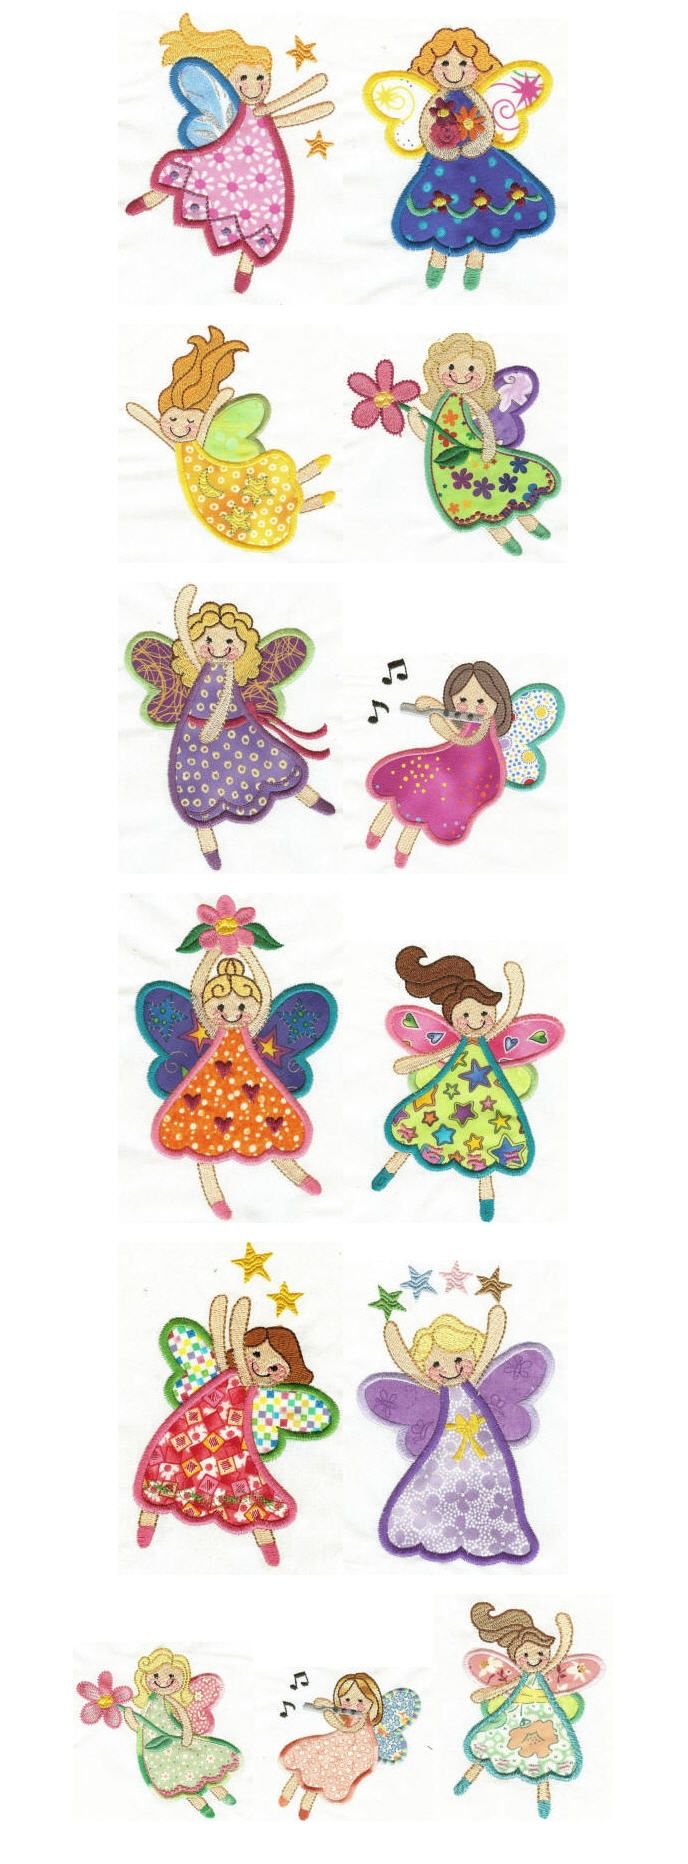 Embroidery designs | free machine embroidery designs | fairies applique